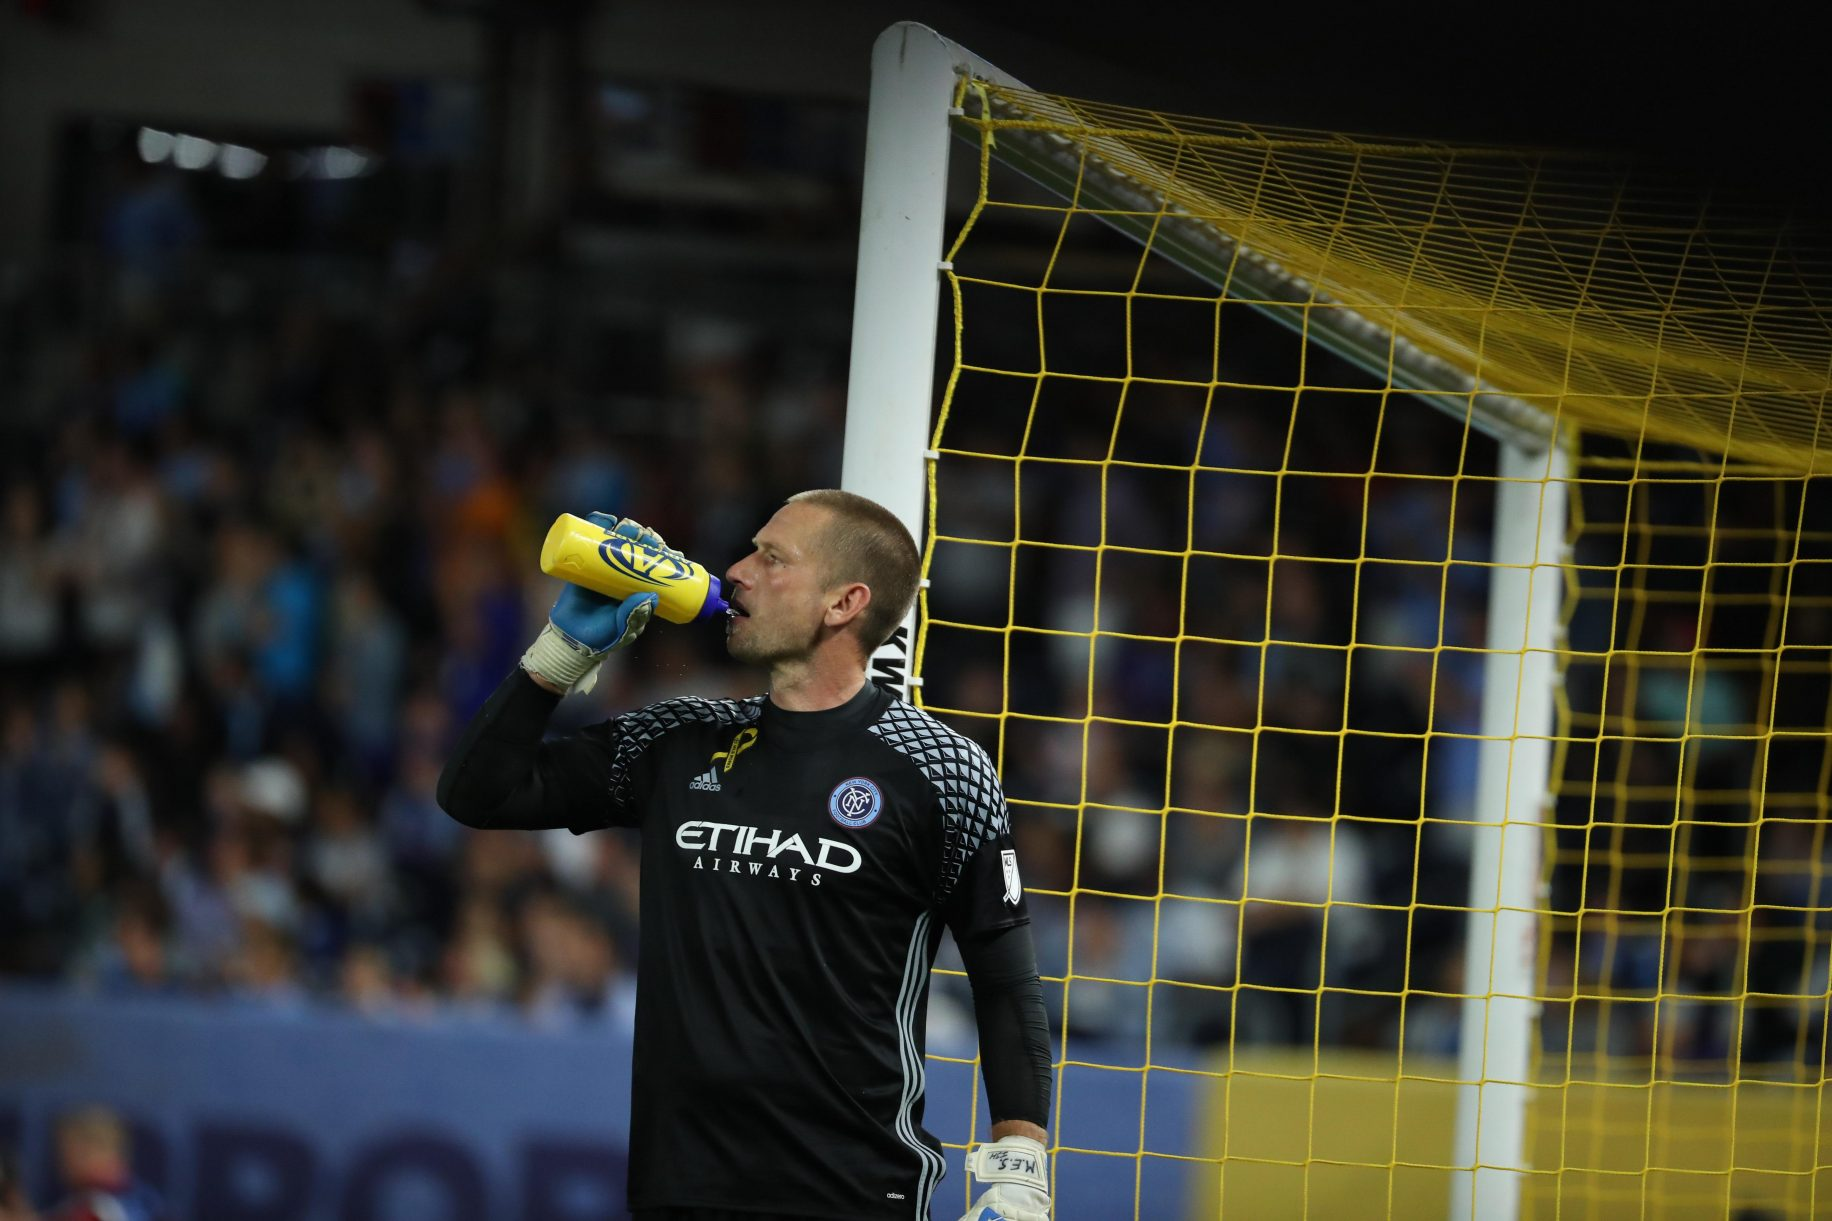 NYCFC trade goalkeeper Josh Saunders to Orlando